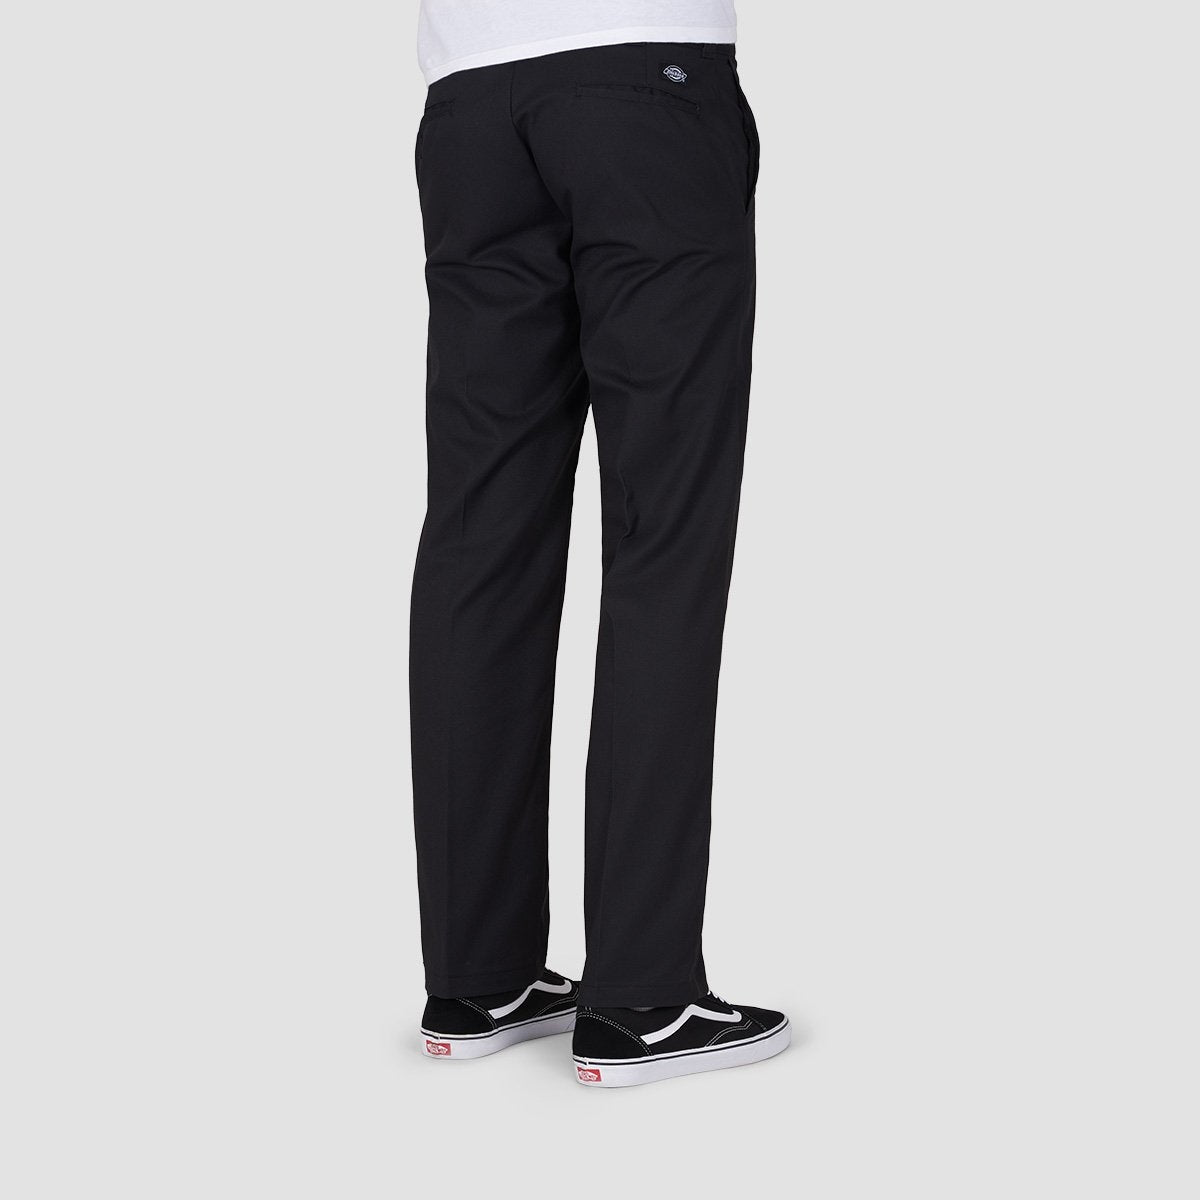 Dickies Industrial Work Pants Black - Clothing